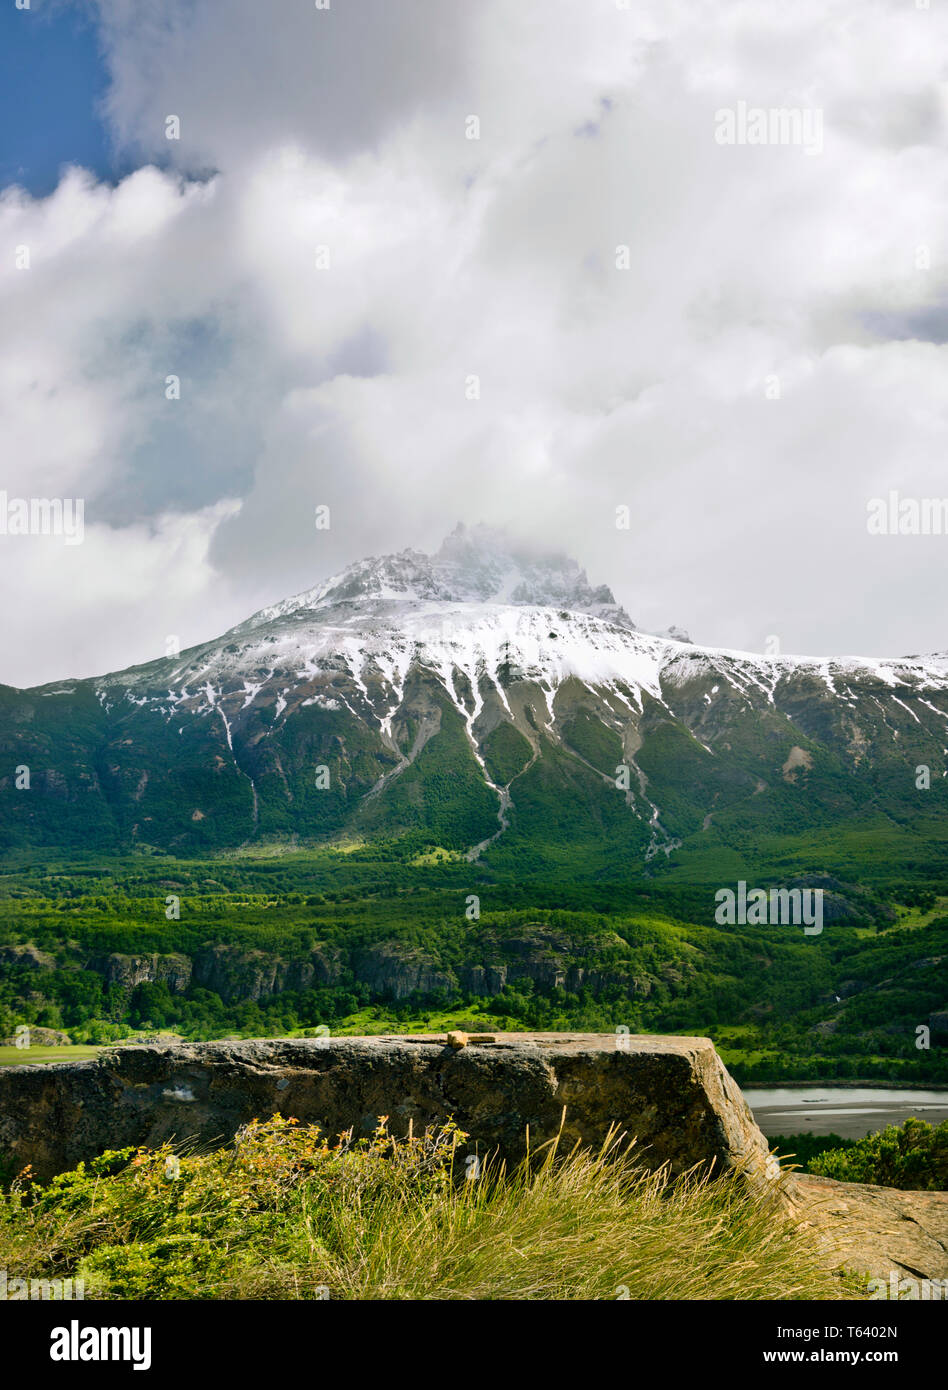 November in Reserva Nacional Cerro Castillo in the Aysén of Chile. - Stock Image